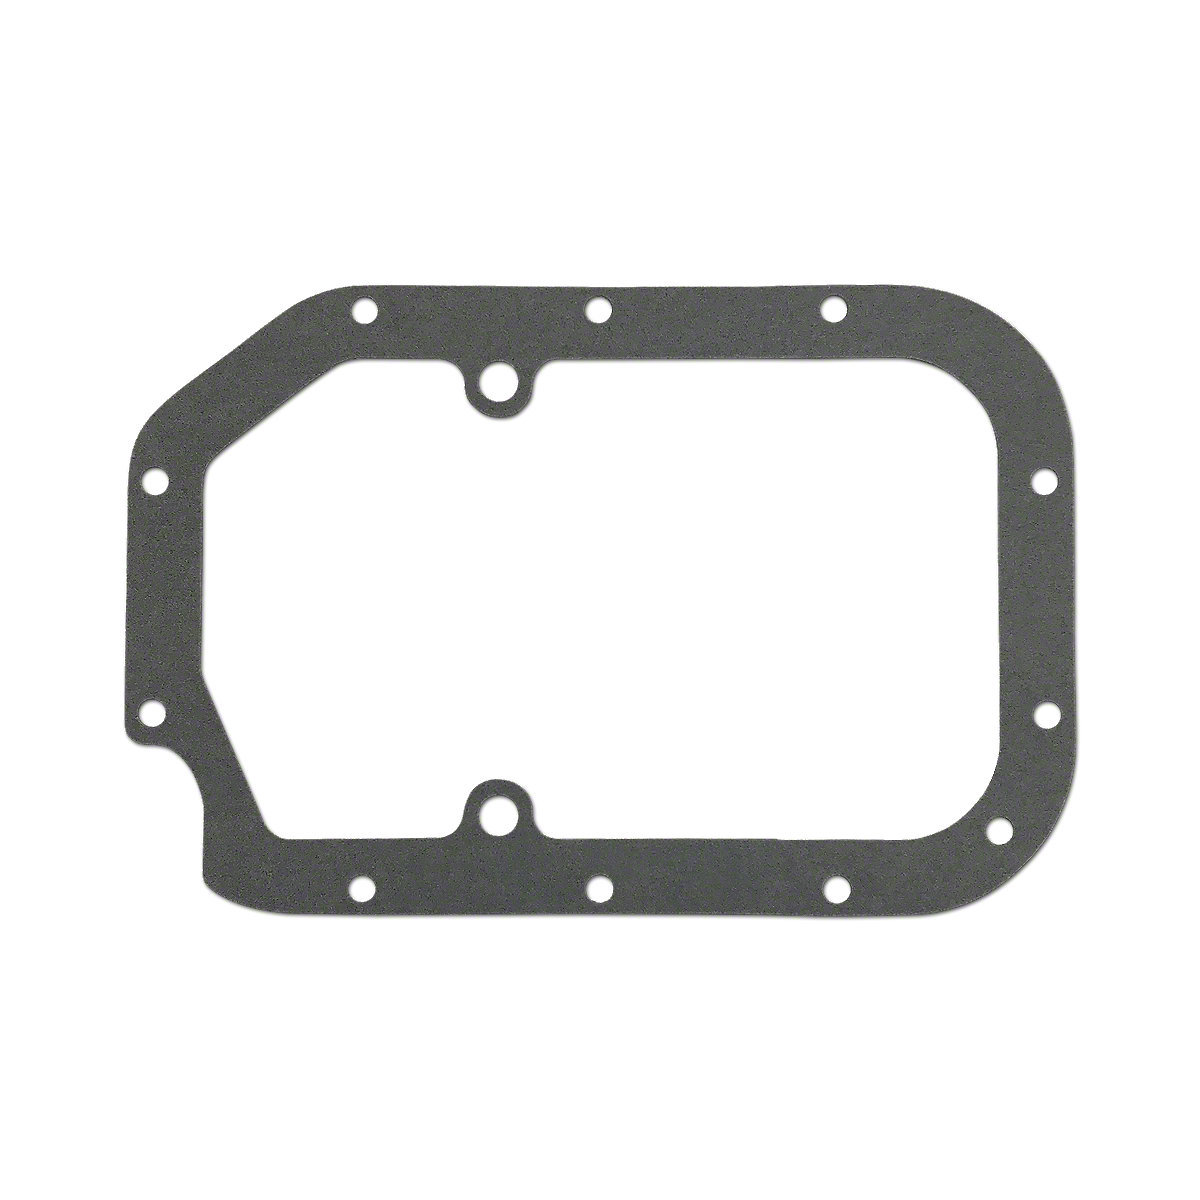 FDS3979 Rear Center Housing to Transmission Case Gasket